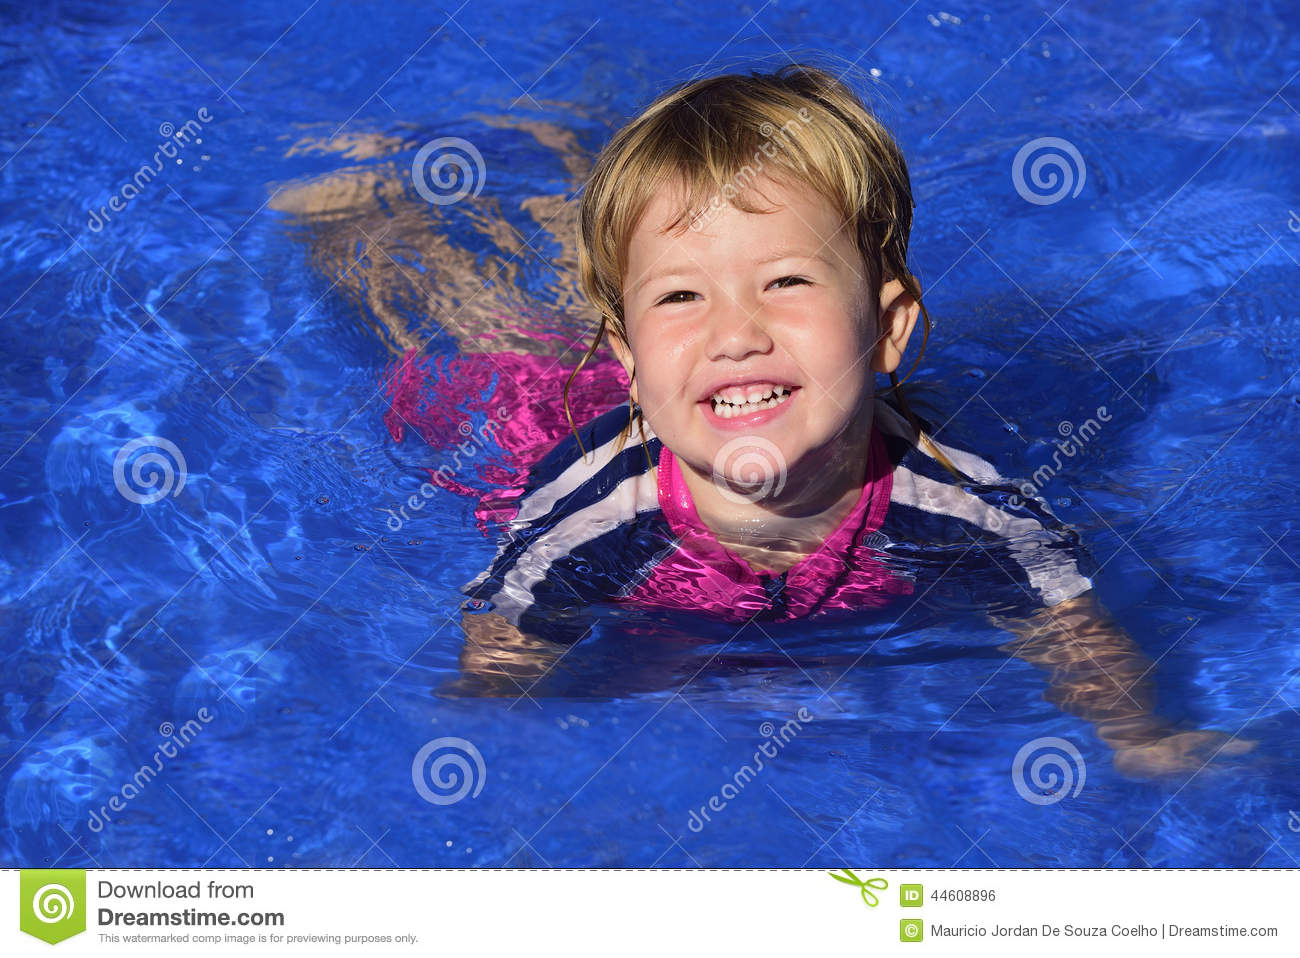 Baby learn to swim canberra times